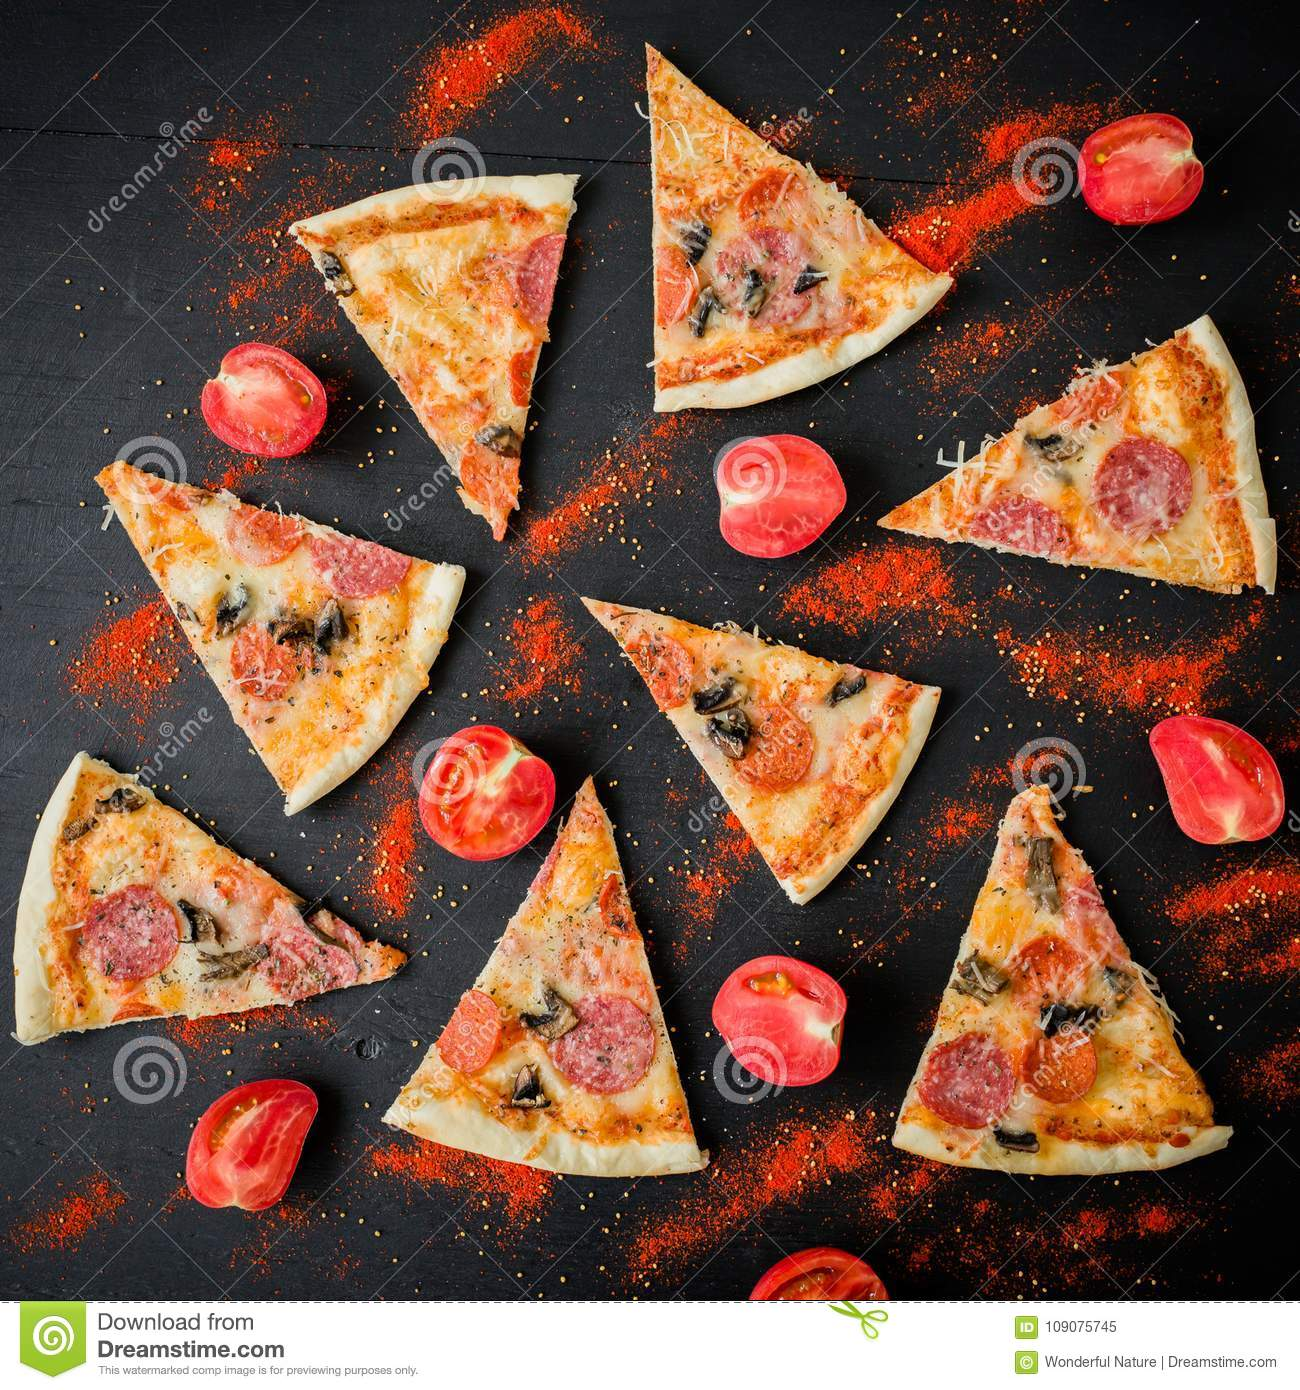 Pizza with ingredients on dark table. Pattern of pizza slices and tomato. Flat lay, top view.